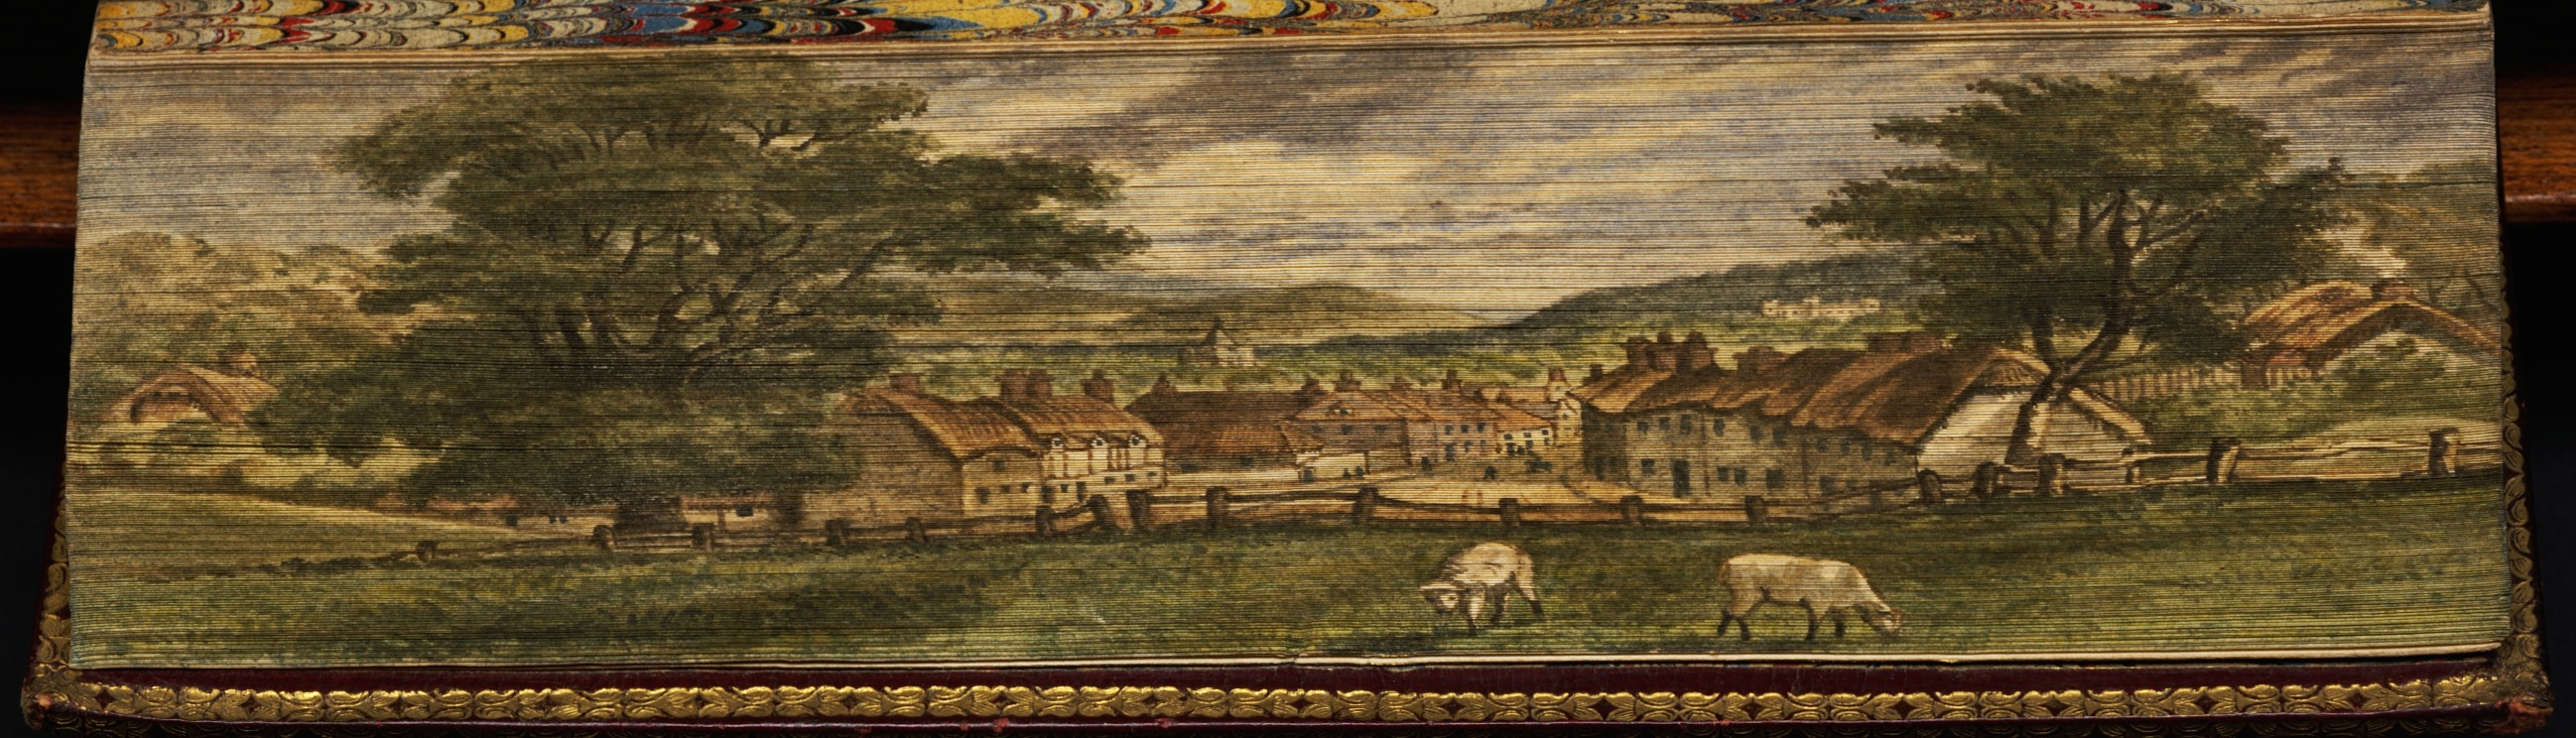 Winborne, Dorset, the birthplace of Matthew Prior, showing houses and cattle